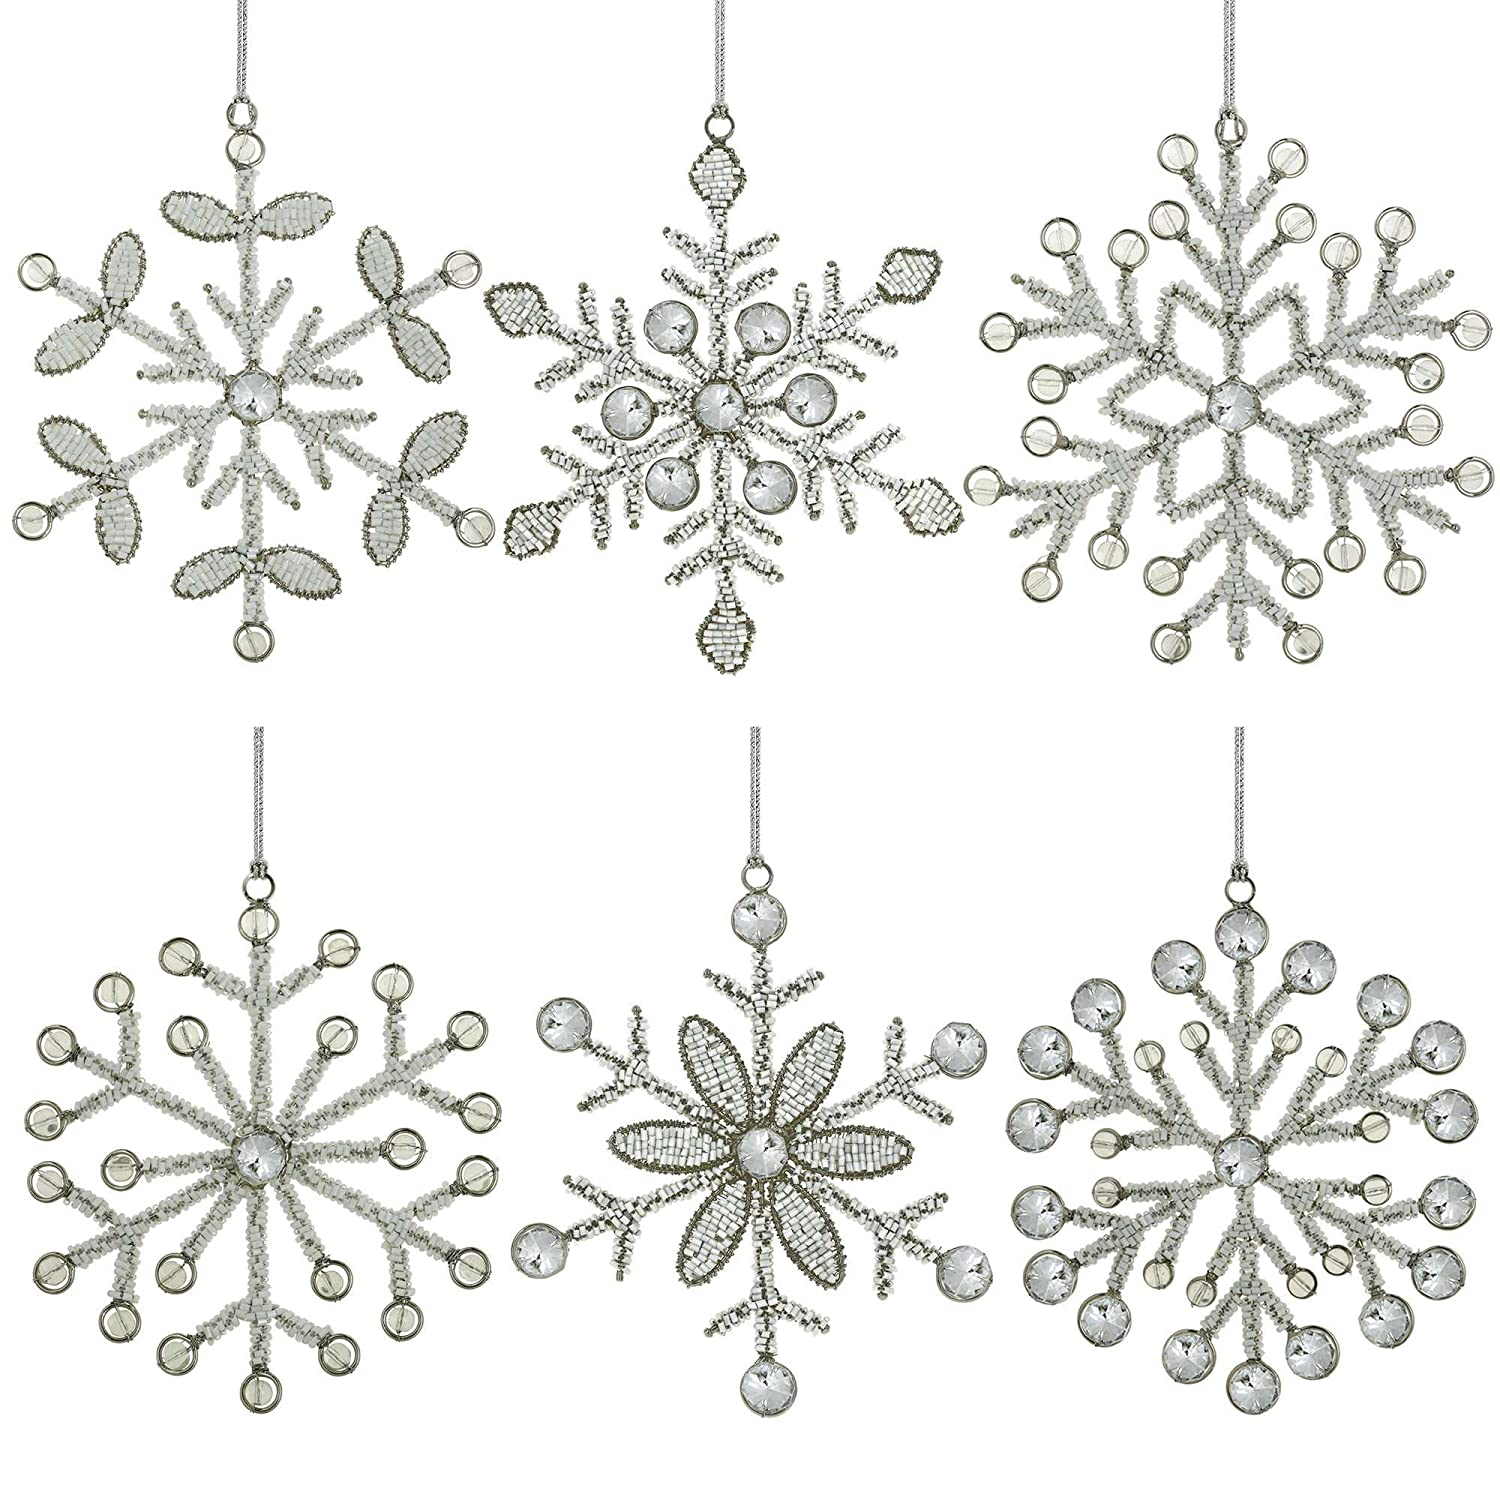 Handmade Iron and Glass Snowflake Christmas Ornaments Set of 6